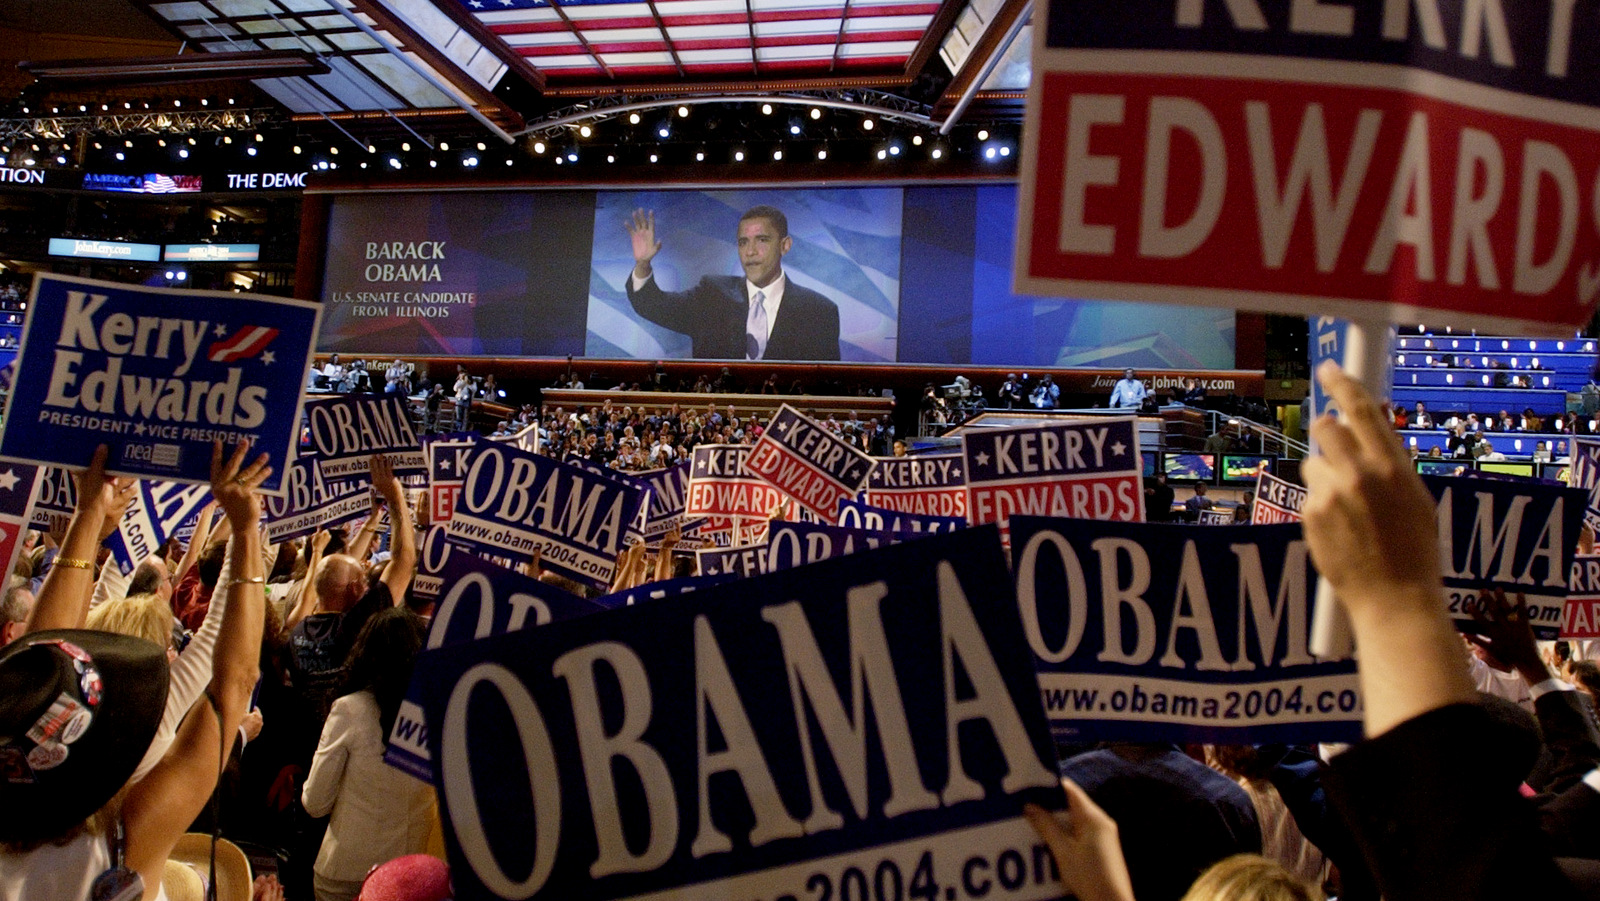 Delegates cheer as keynote speaker Barack Obama, candidate for the Senate from Illinois, speaks during the Democratic National Convention at the FleetCenter in Boston, July 27, 2004. (AP/Laura Rauch)